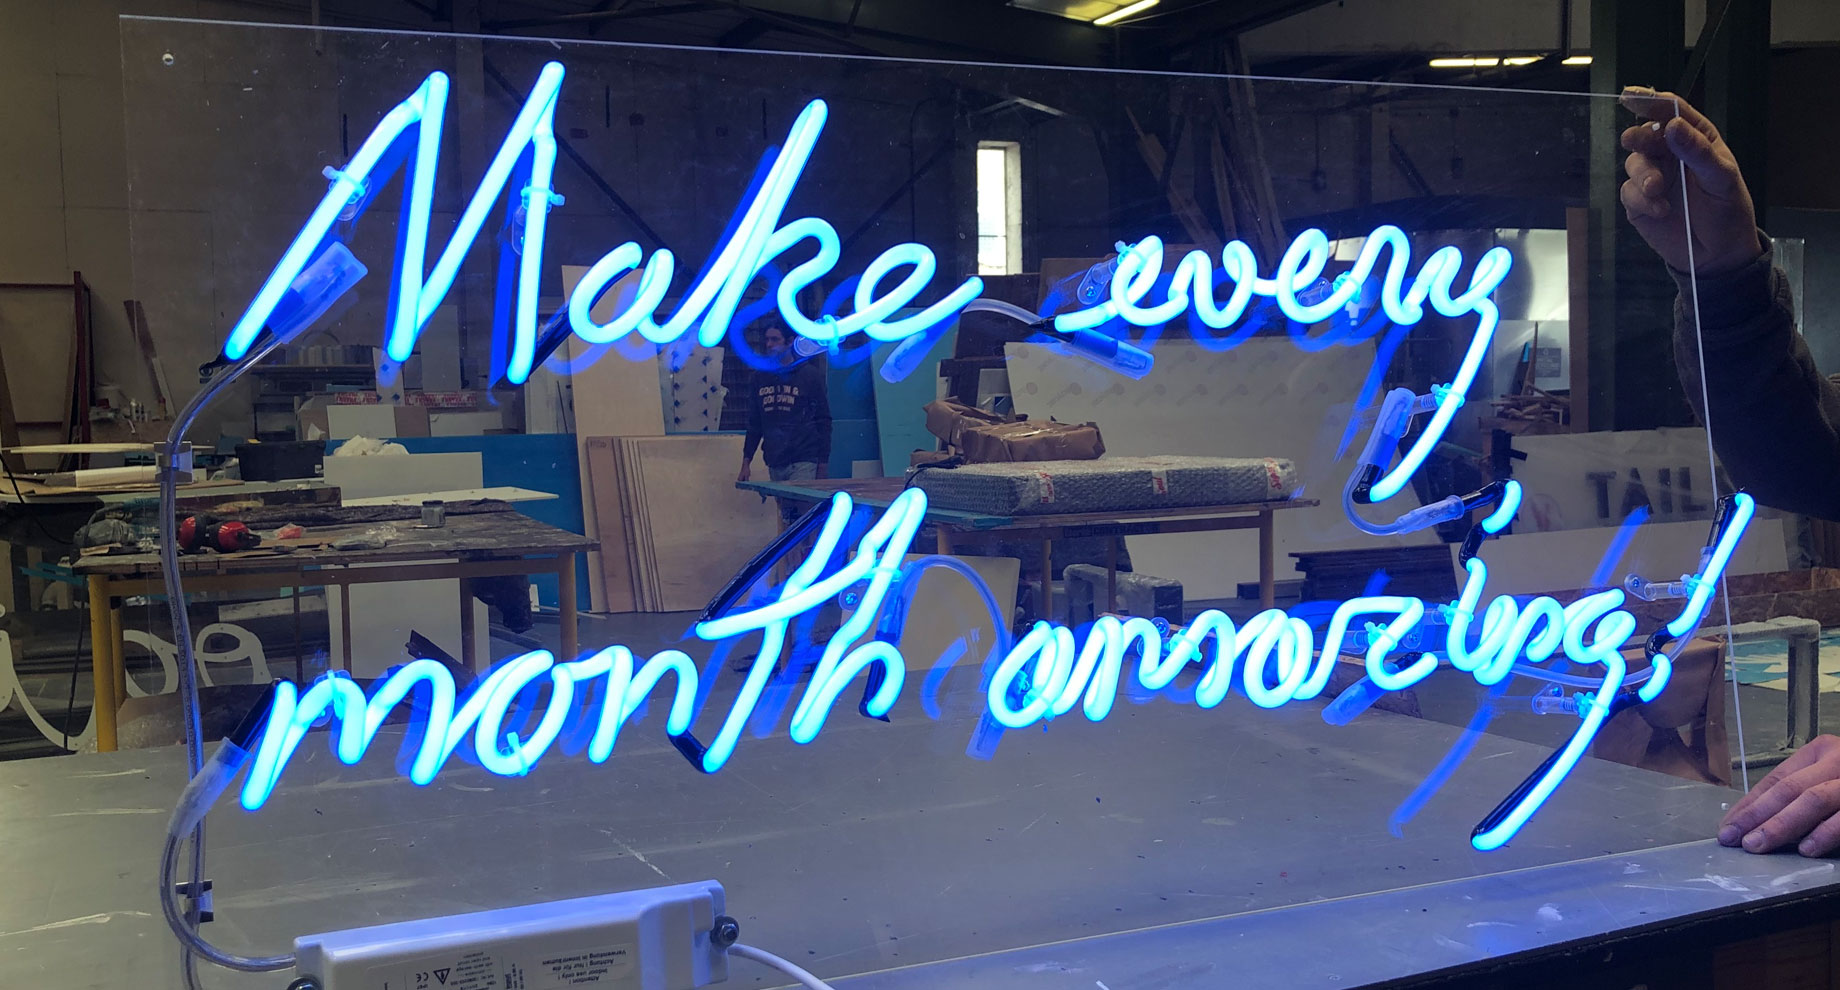 Make every month amazing! - neon sign